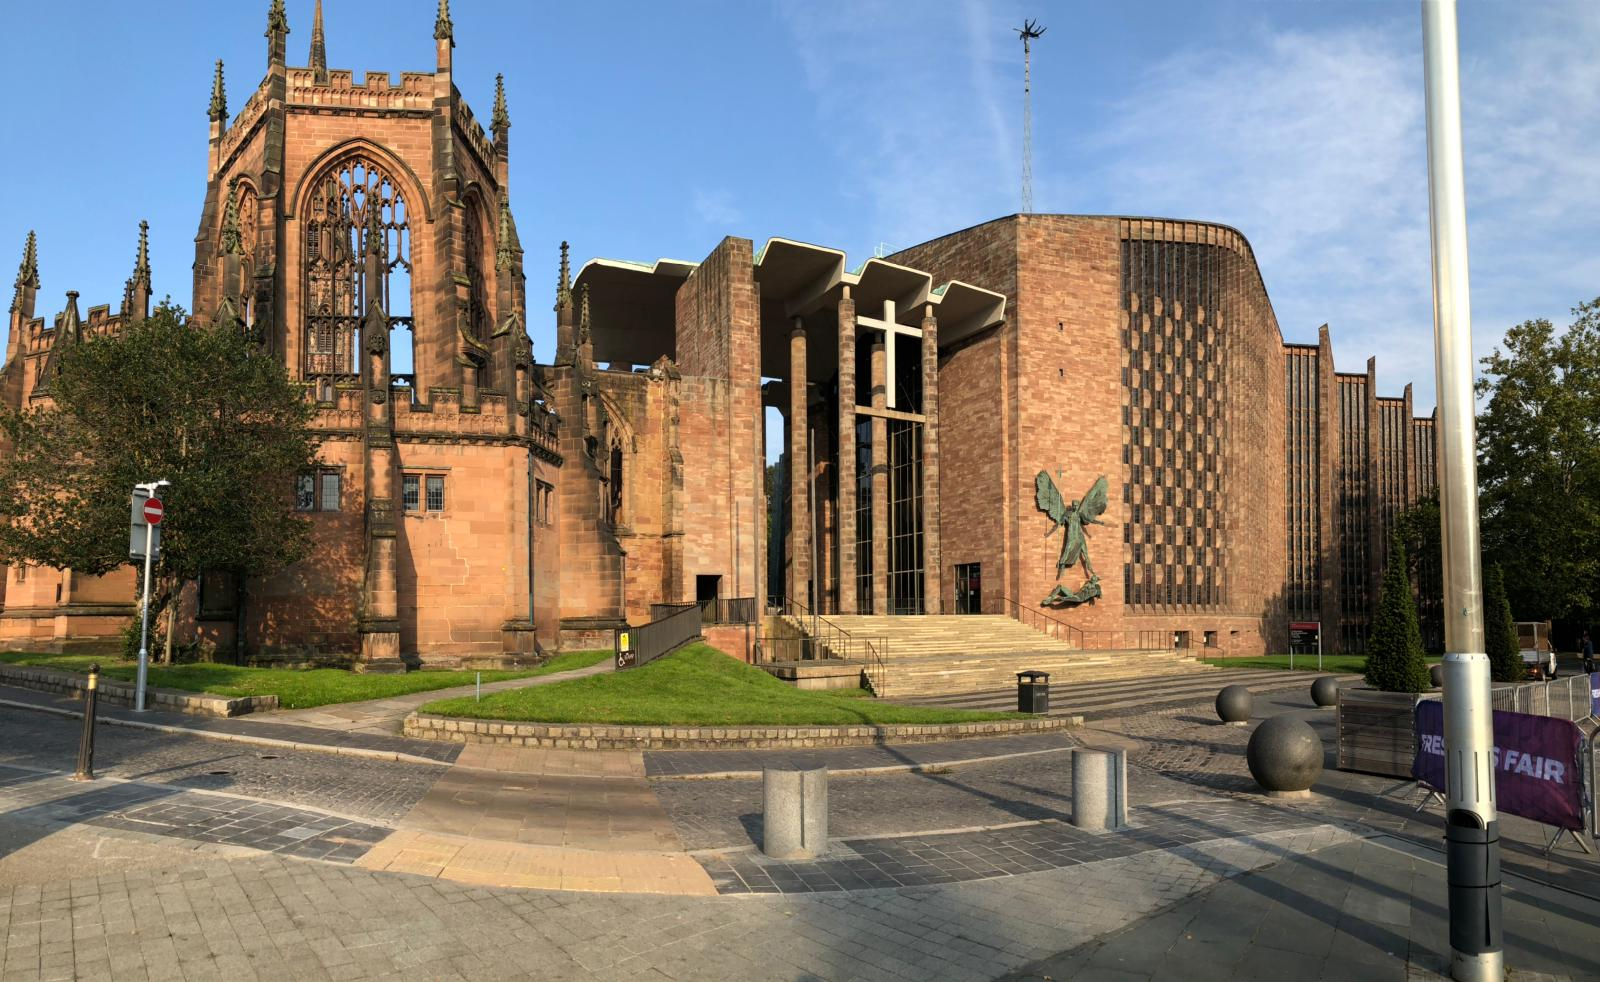 a large stone building with a clock on the side of a road with Coventry Cathedral in the background